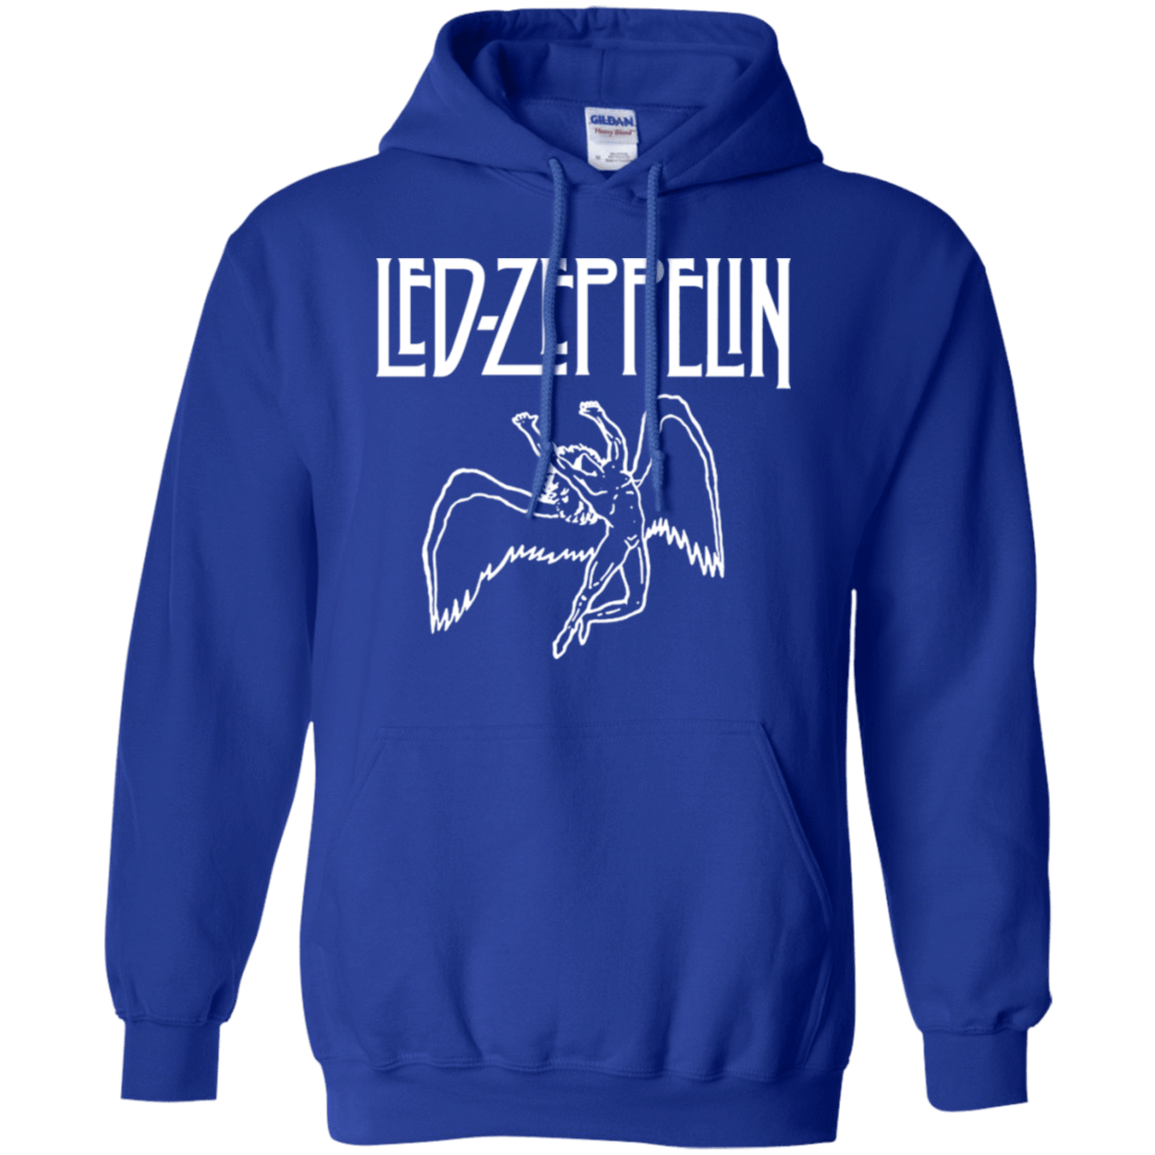 Led Zeppelin 541-4765-72742973-23175 - Tee Ript